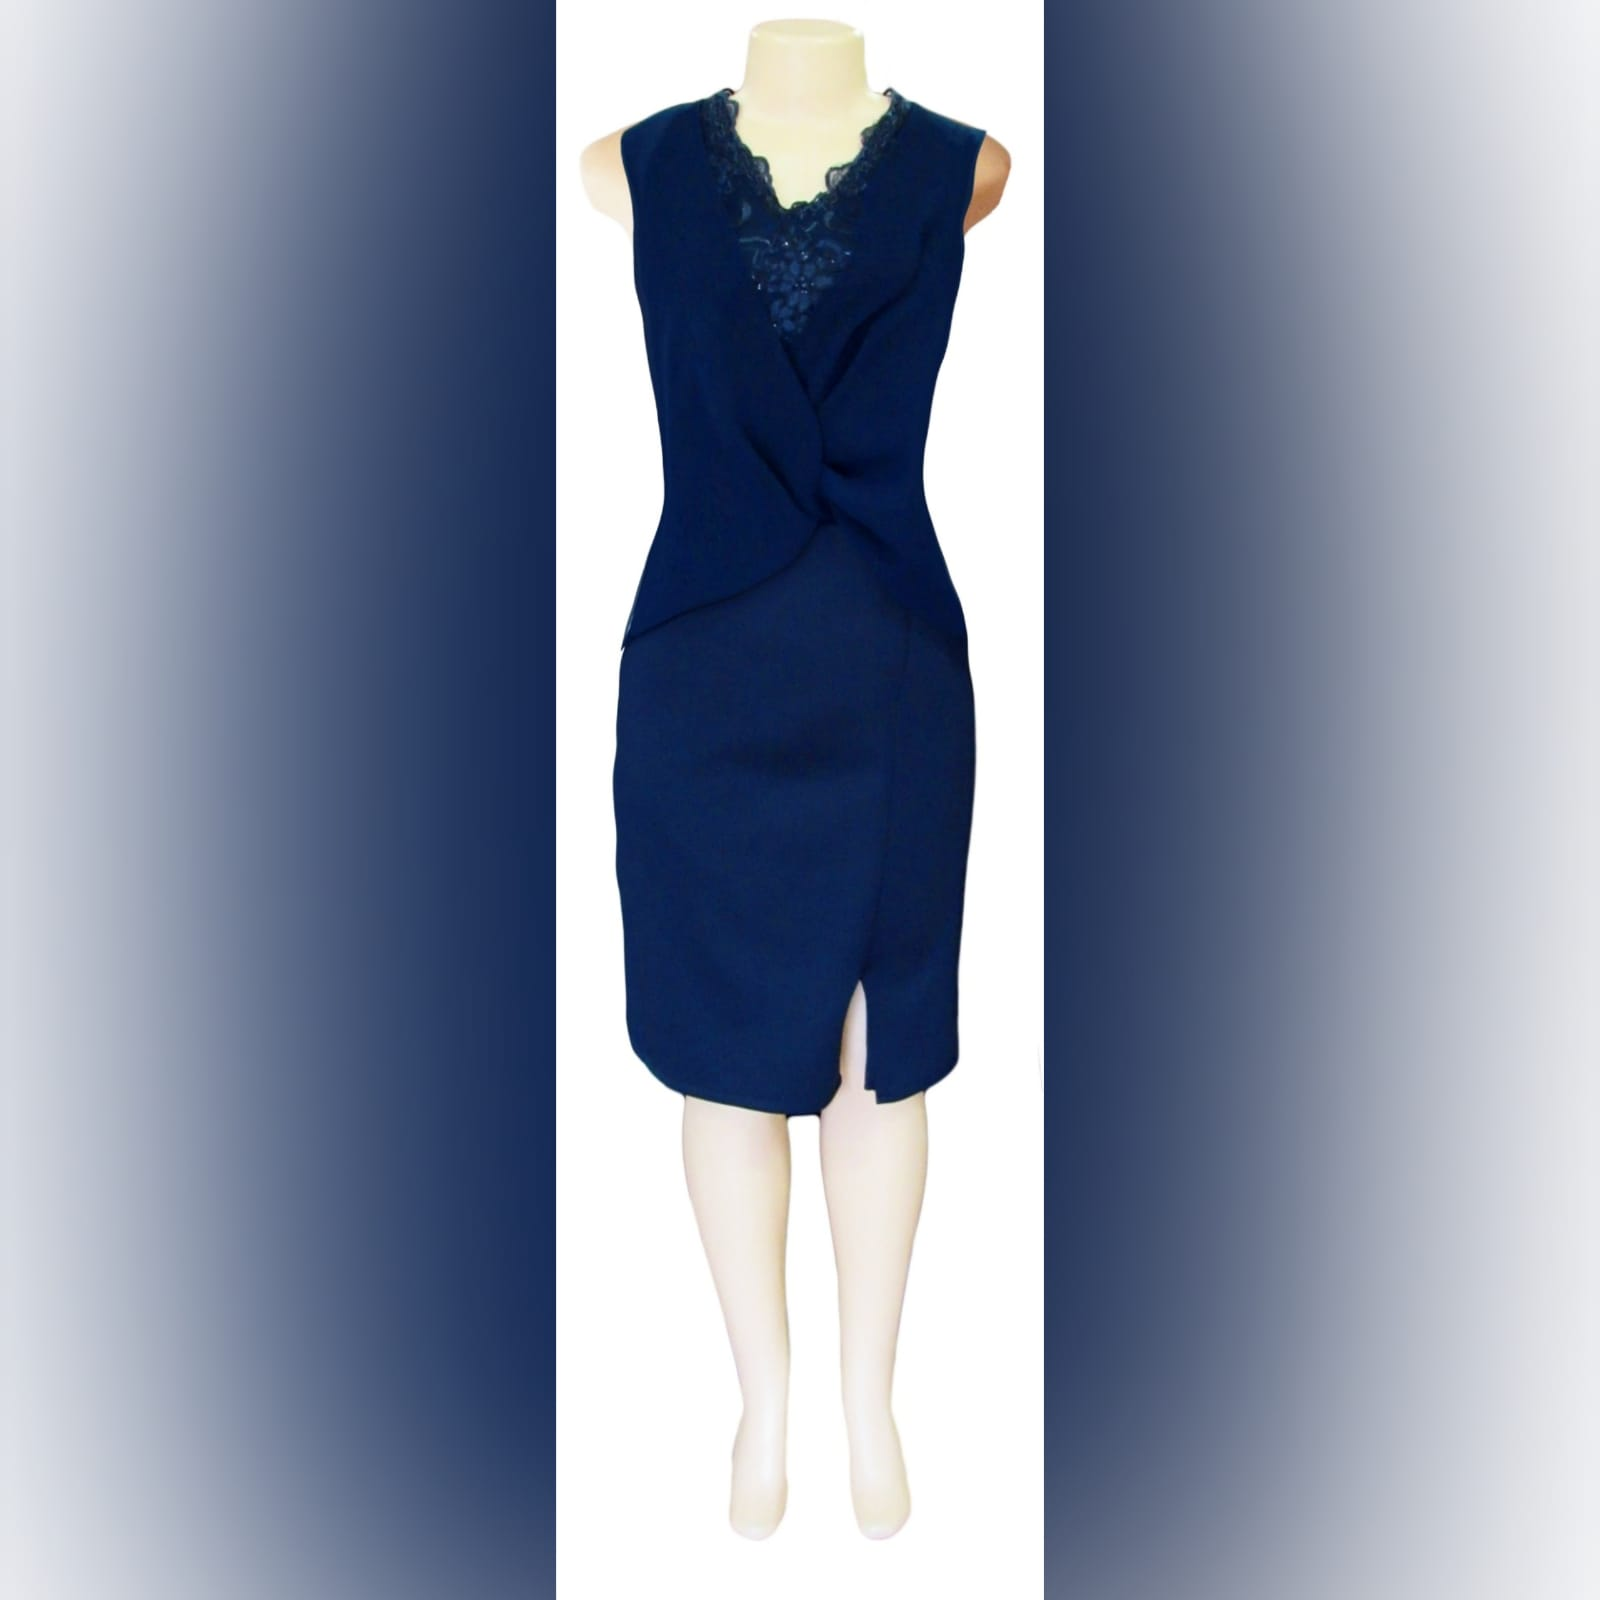 Navy blue knee length mother of the bride dress 5 navy blue knee length mother of the bride dress, fitted bottom, with a slit. Lace bodice with an overlay of pleated chiffon.